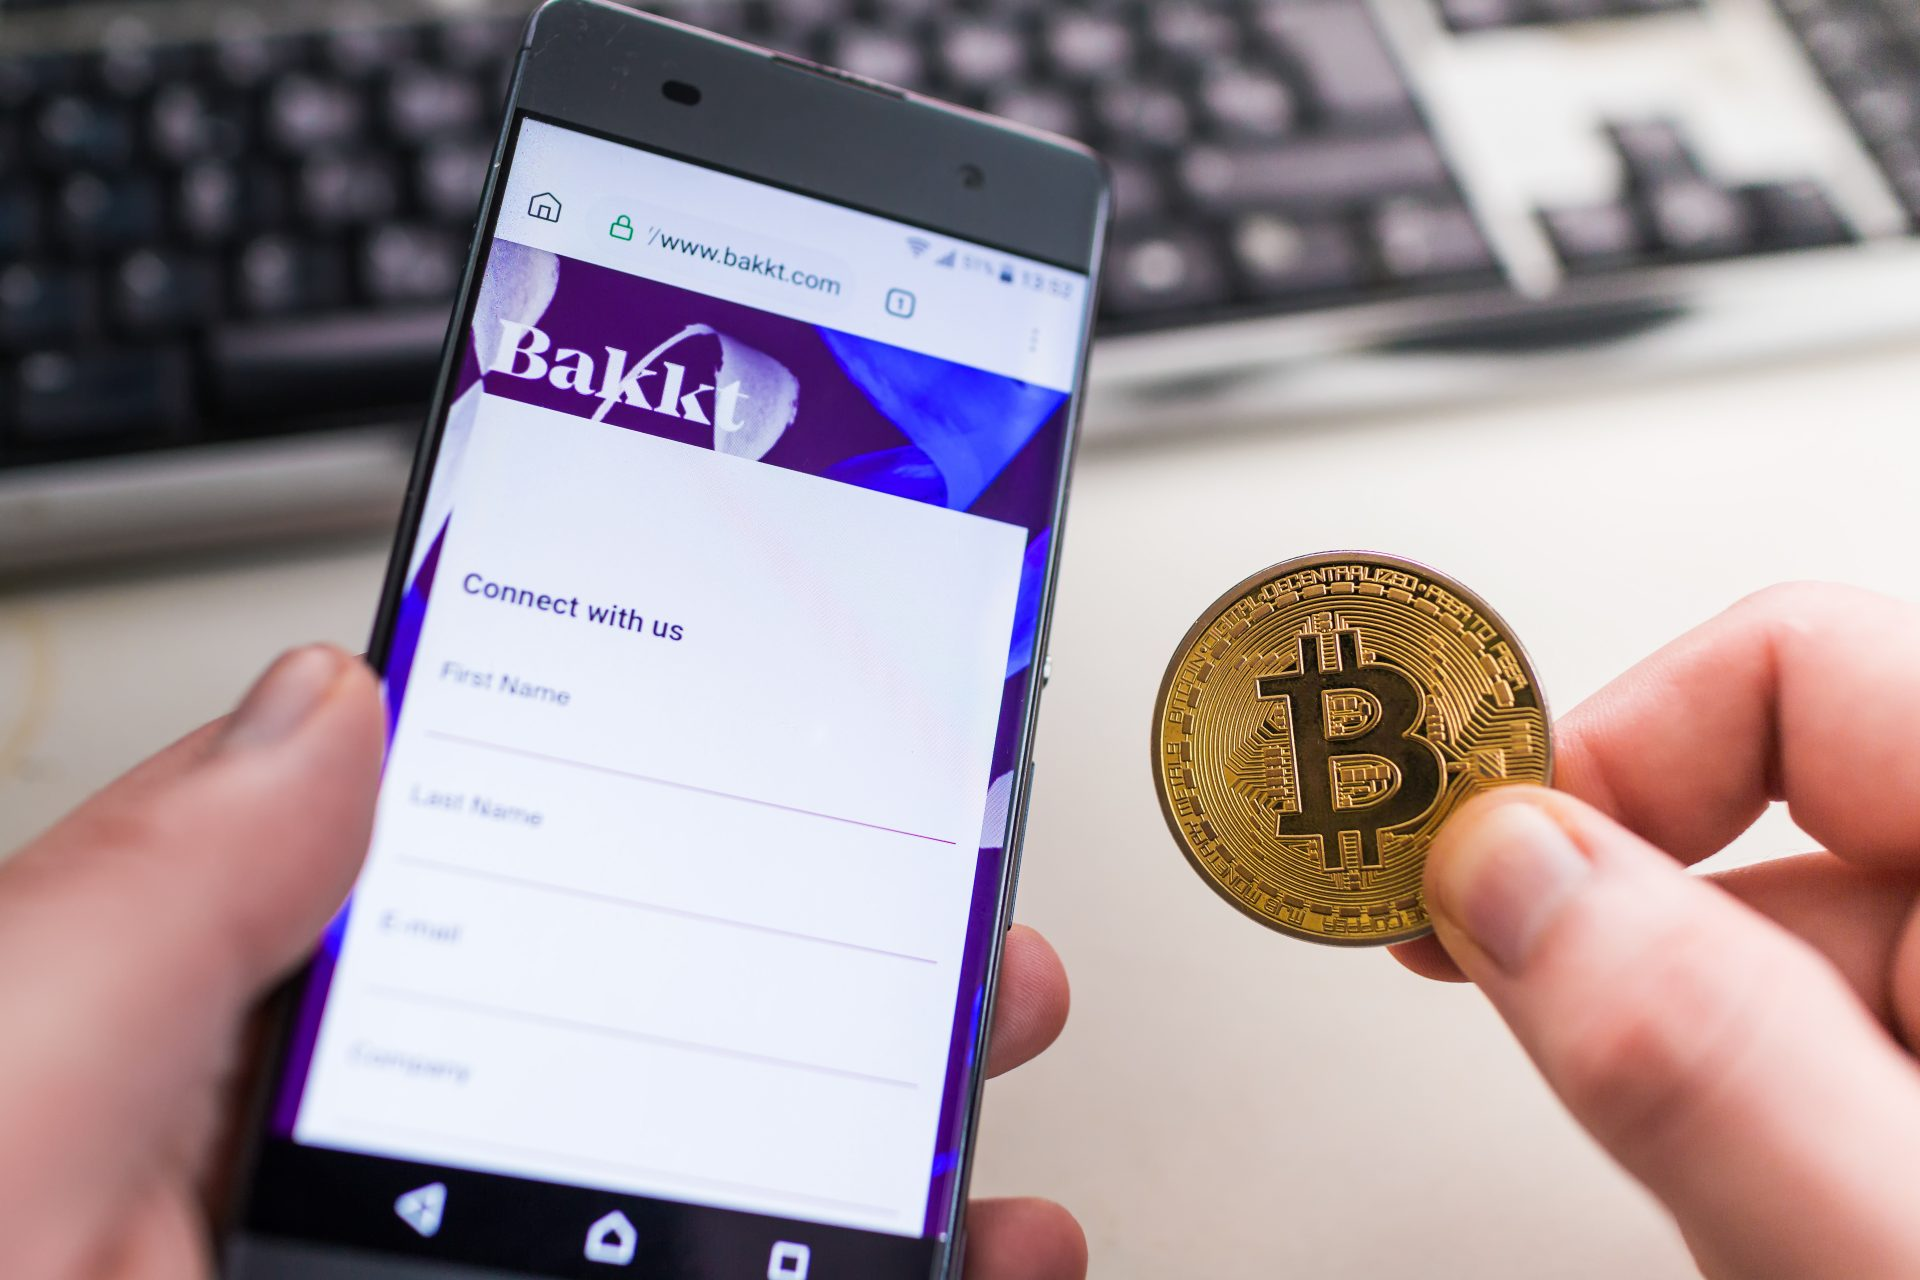 Bakkt Plans to Roll Out Cash-Settled Bitcoin Futures Contract